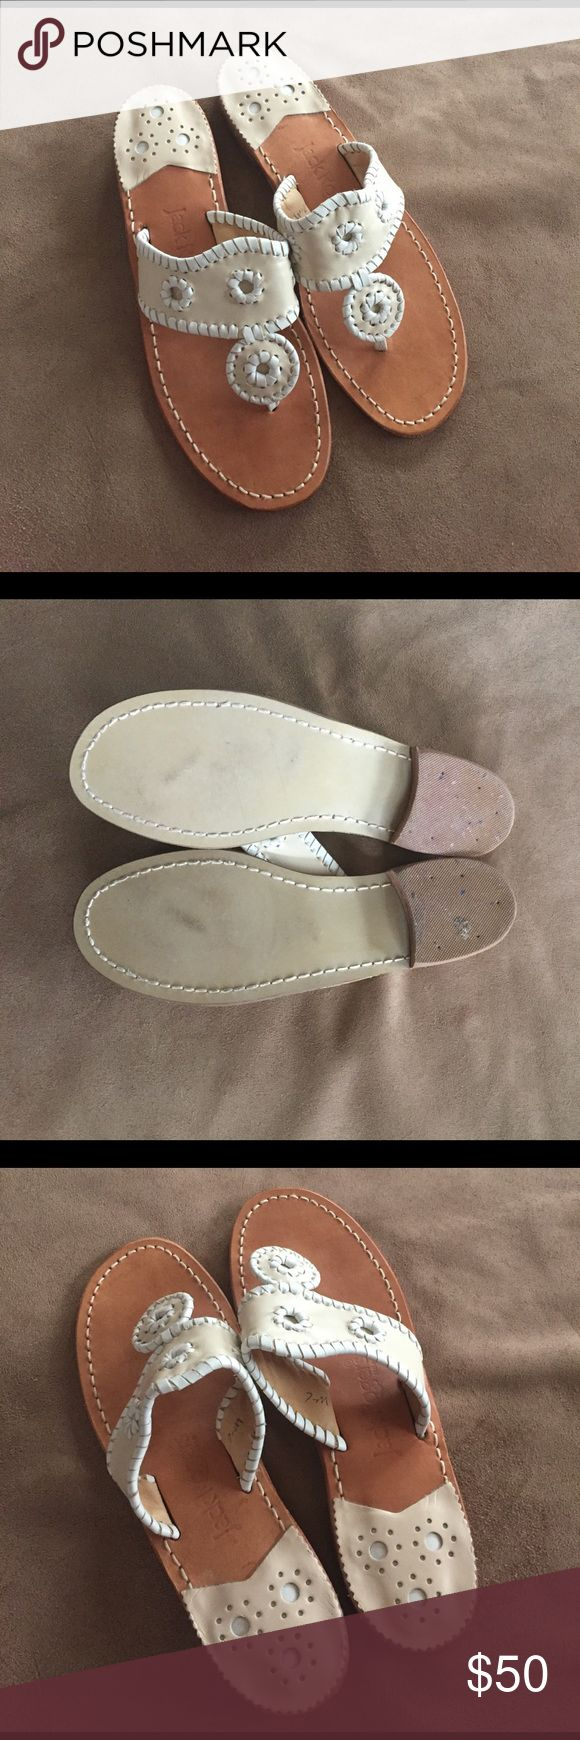 Jack Rogers Palm Beach Navajo Sandals Sz 7 Jack Rogers Palm Beach Navajo Sandals Sz 7. Like new! Please ask questions. Thanks for looking!! Jack Rogers Shoes Sandals